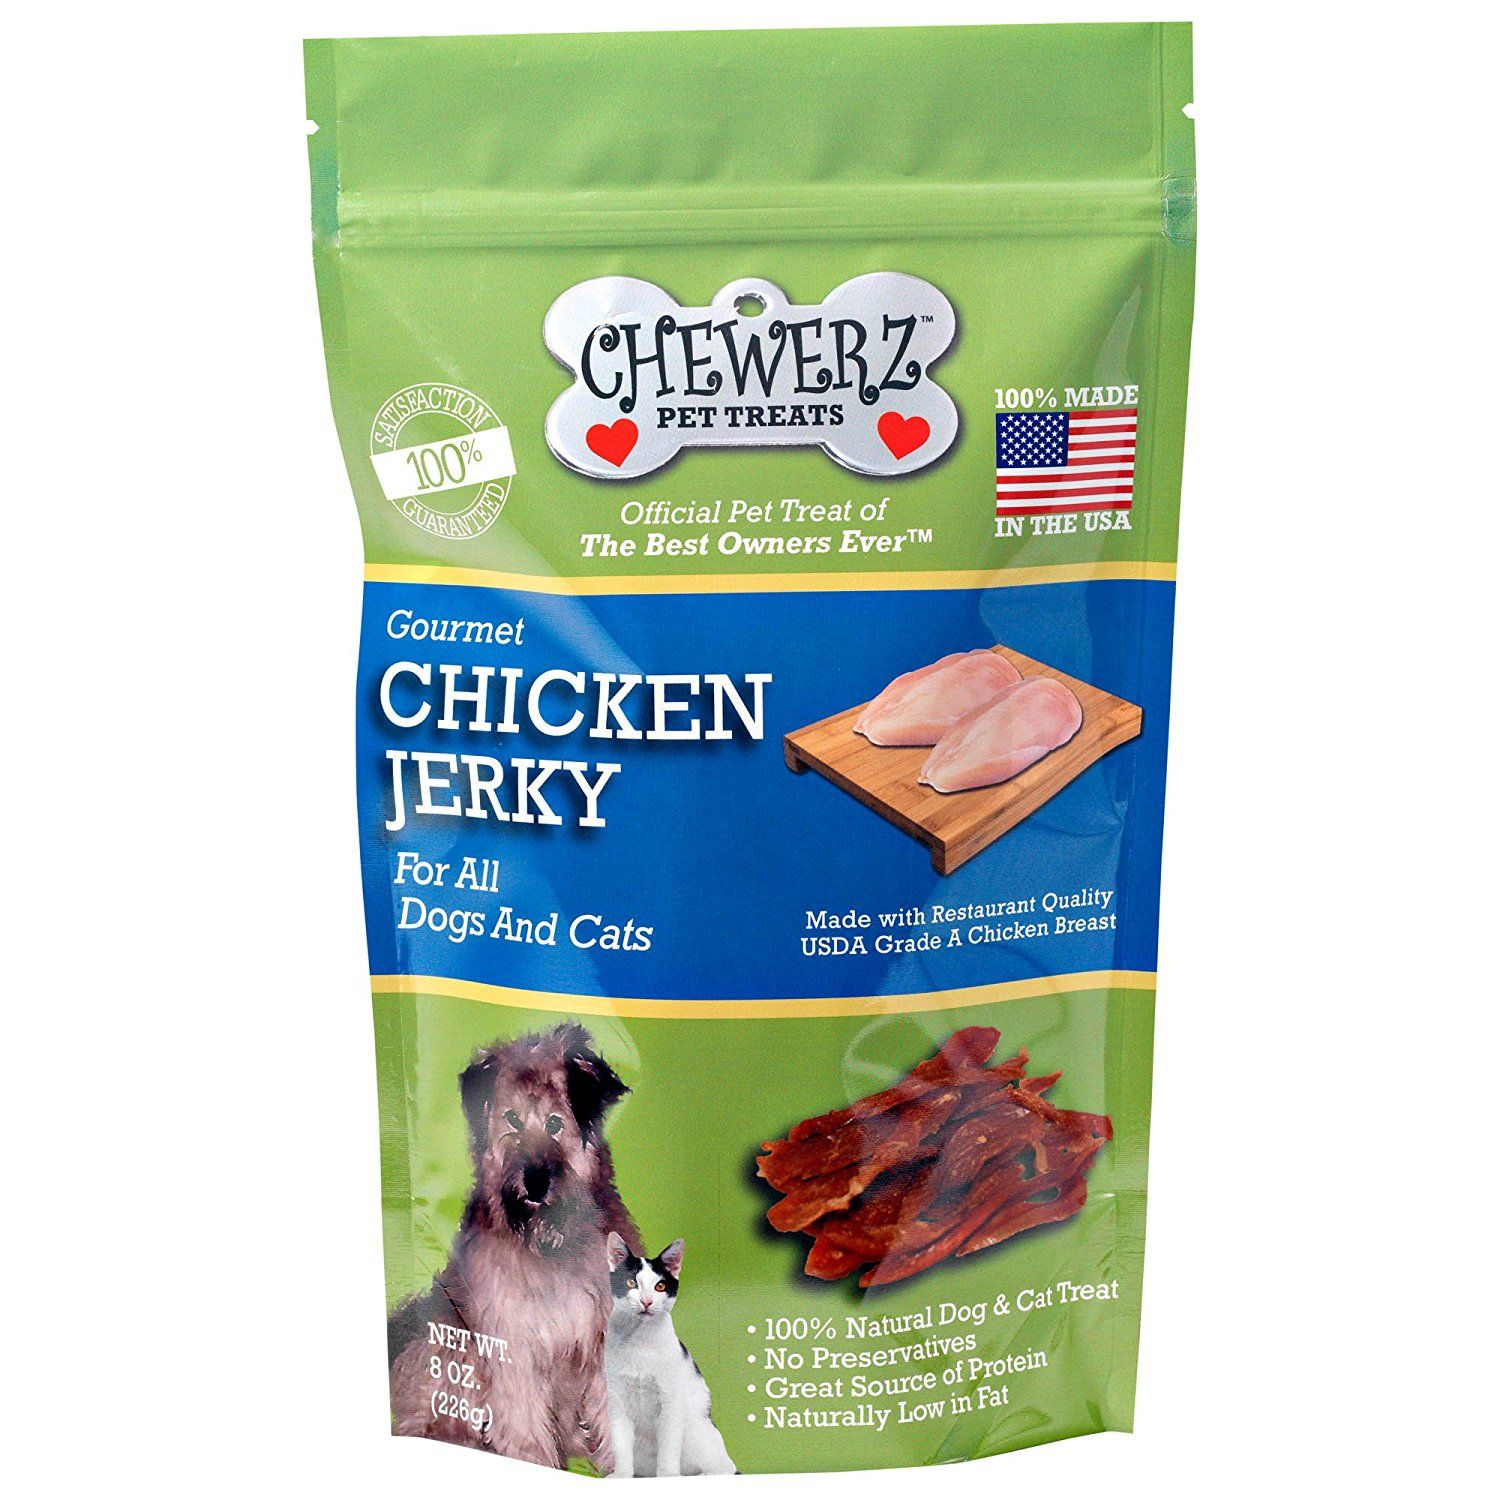 Chewerz Chicken Jerky Dog Treats Made In Usa Only Best Pet